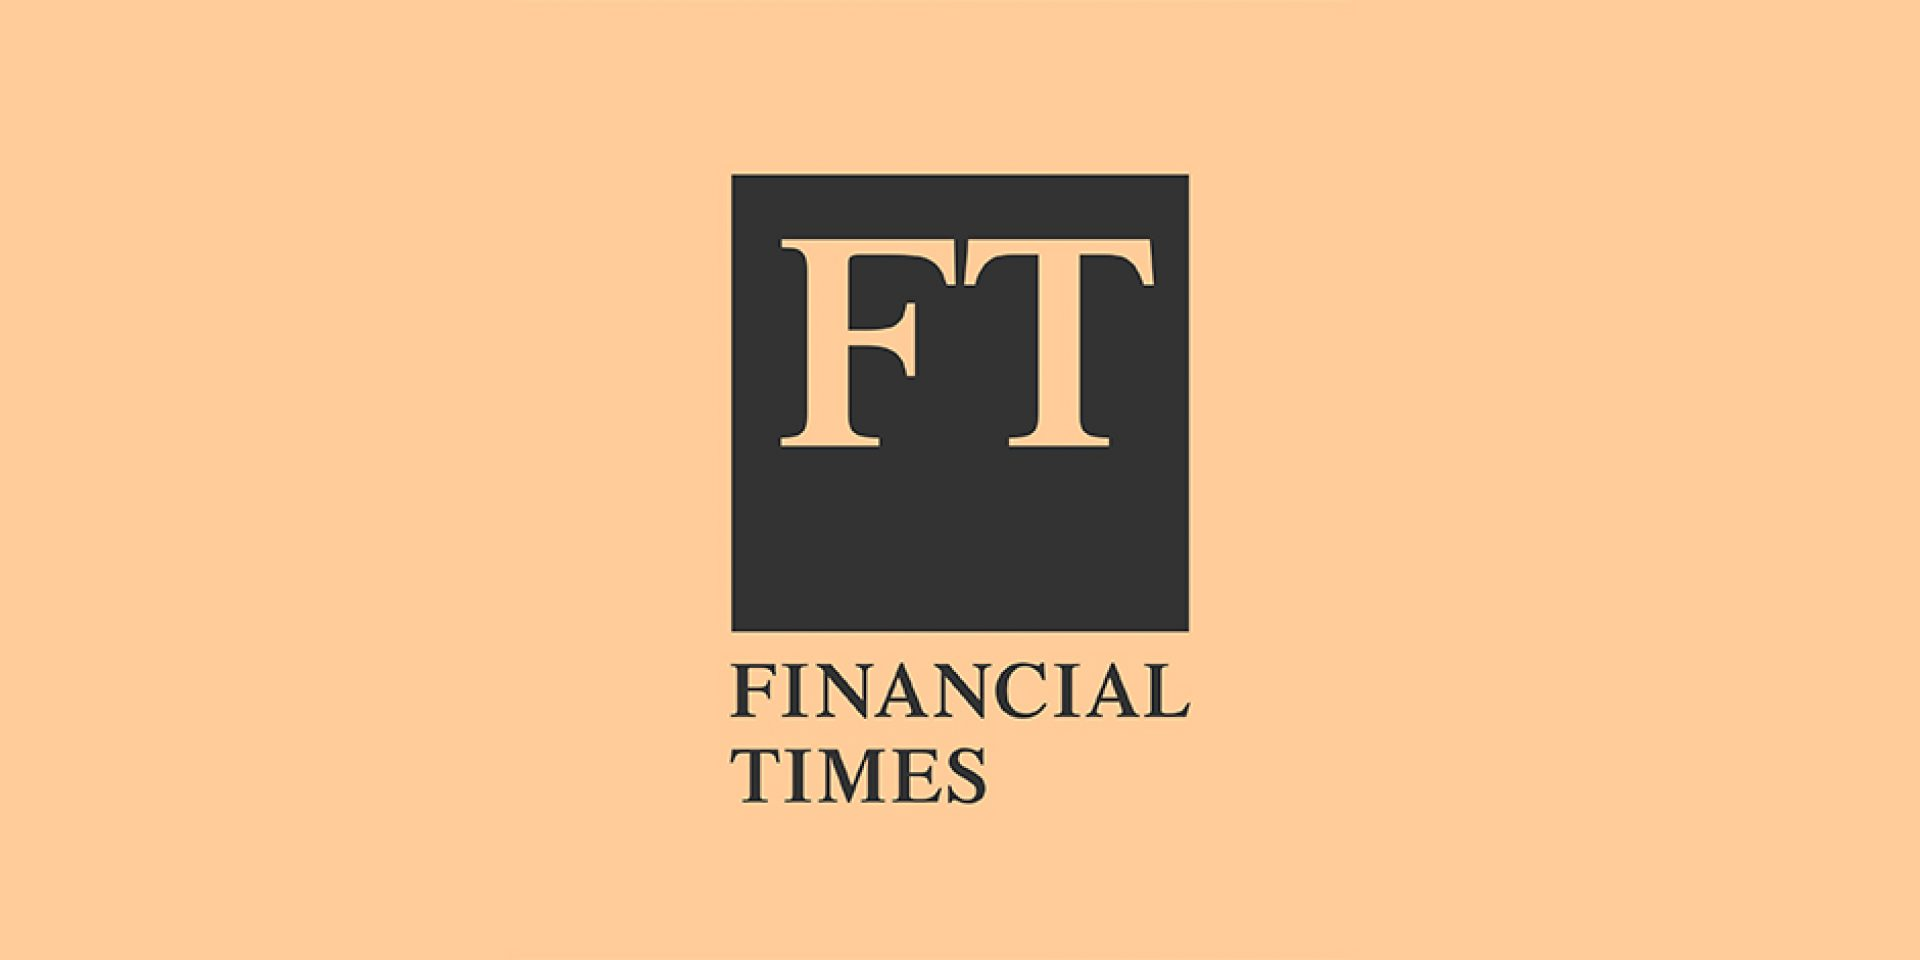 Financial_Times_corporate_logo_(pink)L